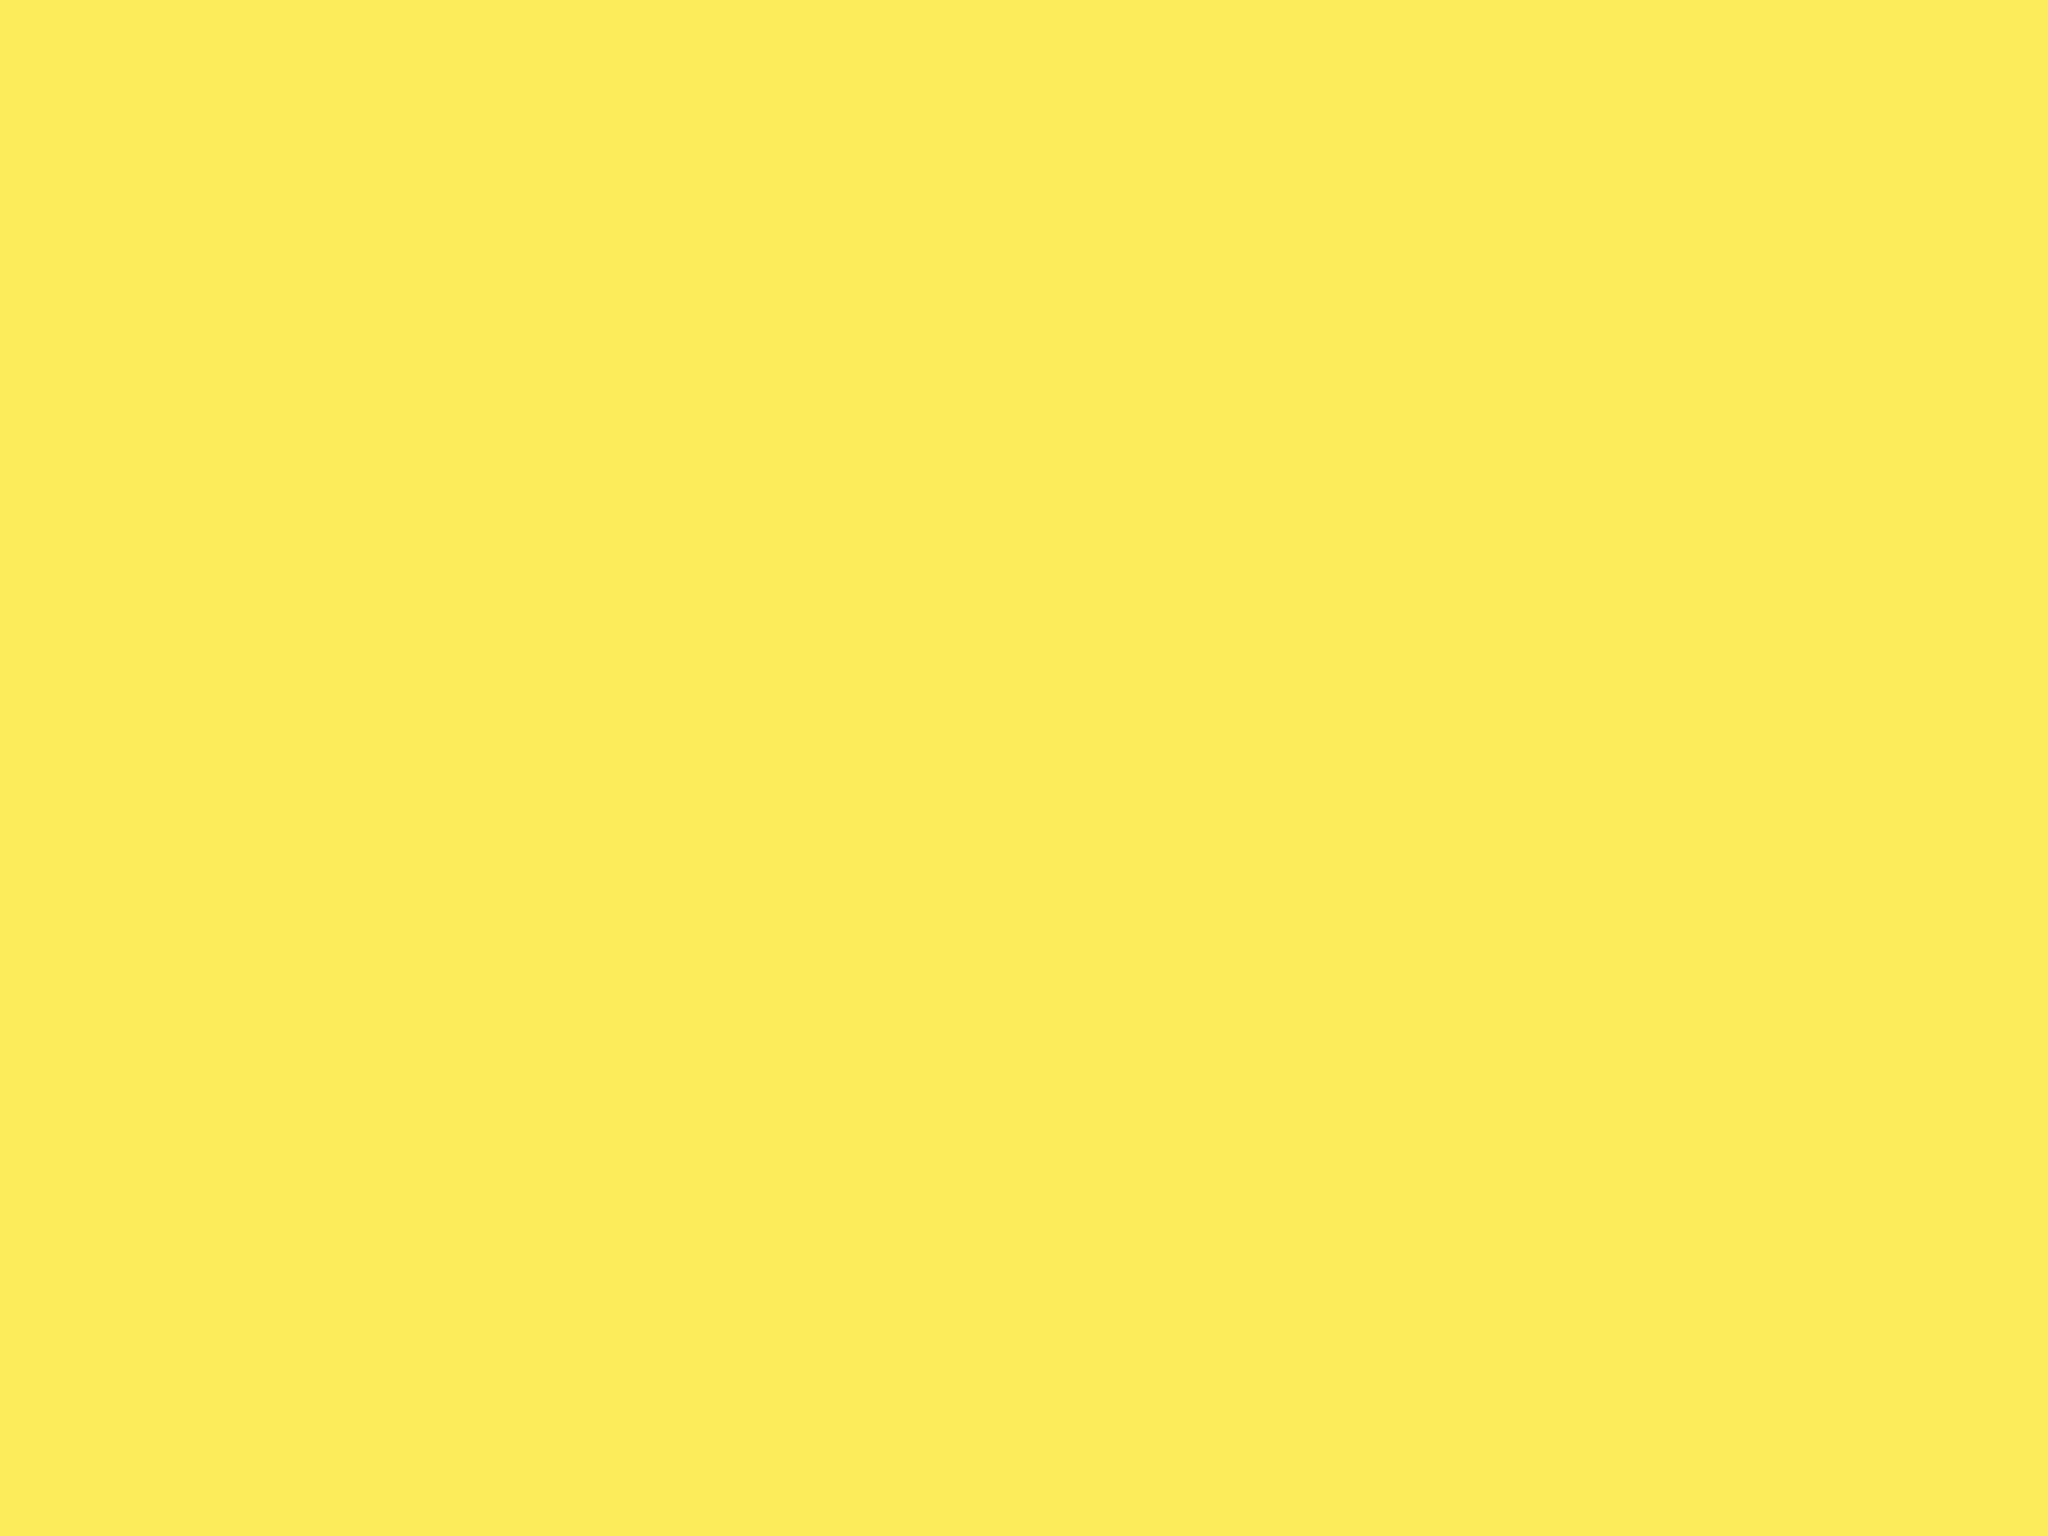 2048x1536 Maize Solid Color Background